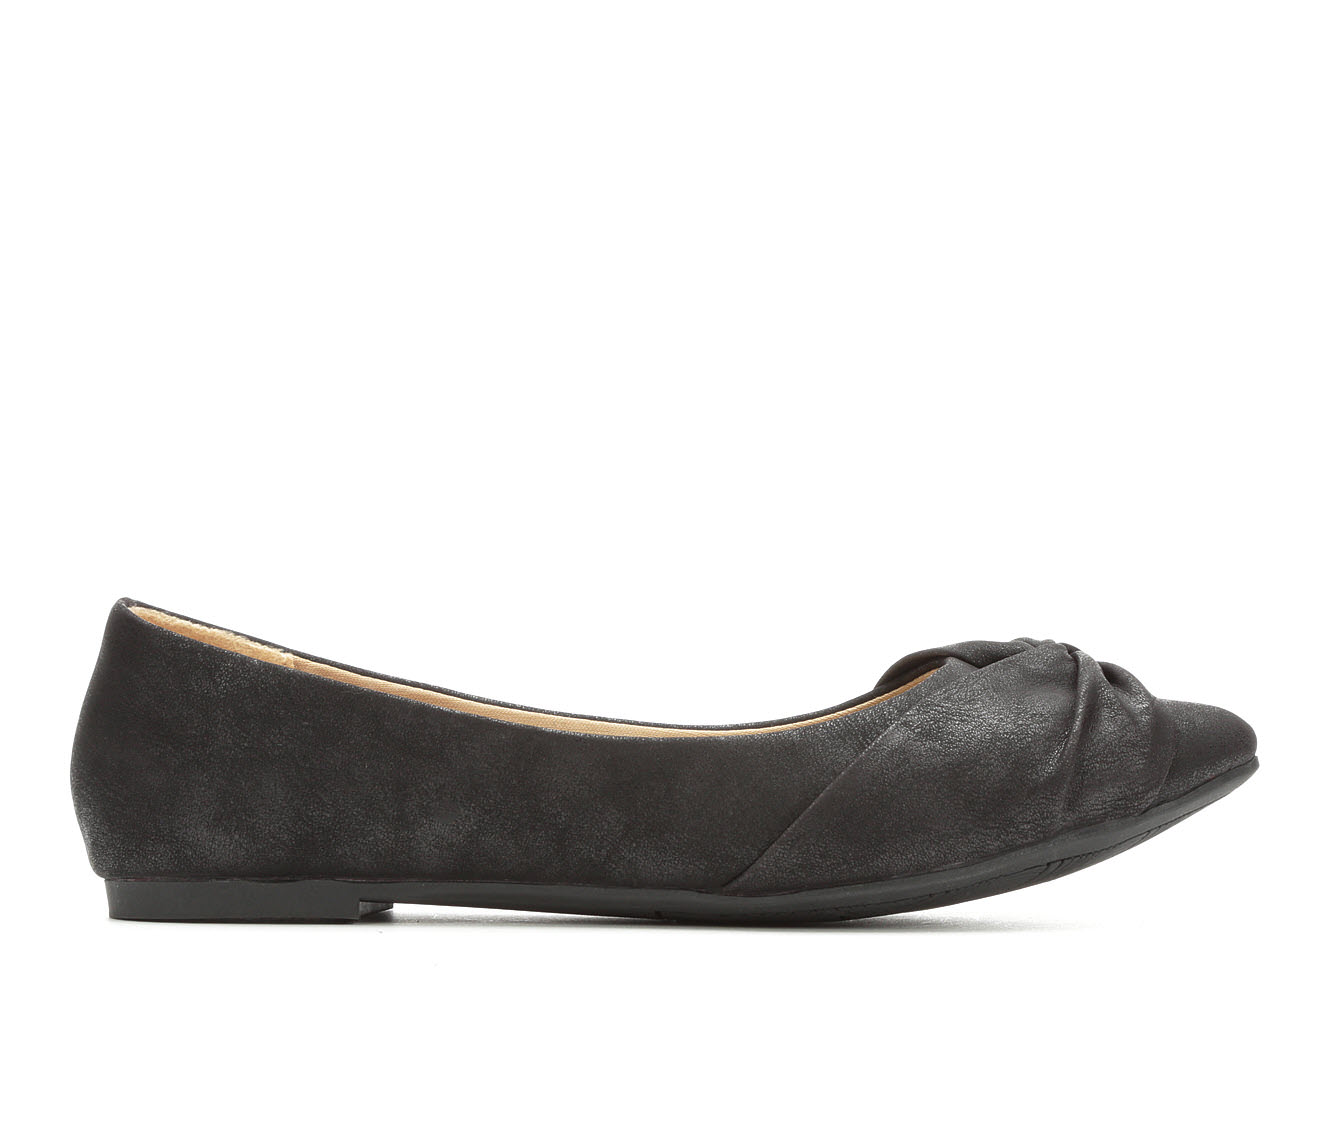 Jellypop Jacquee Women's Shoe (Black Faux Leather)